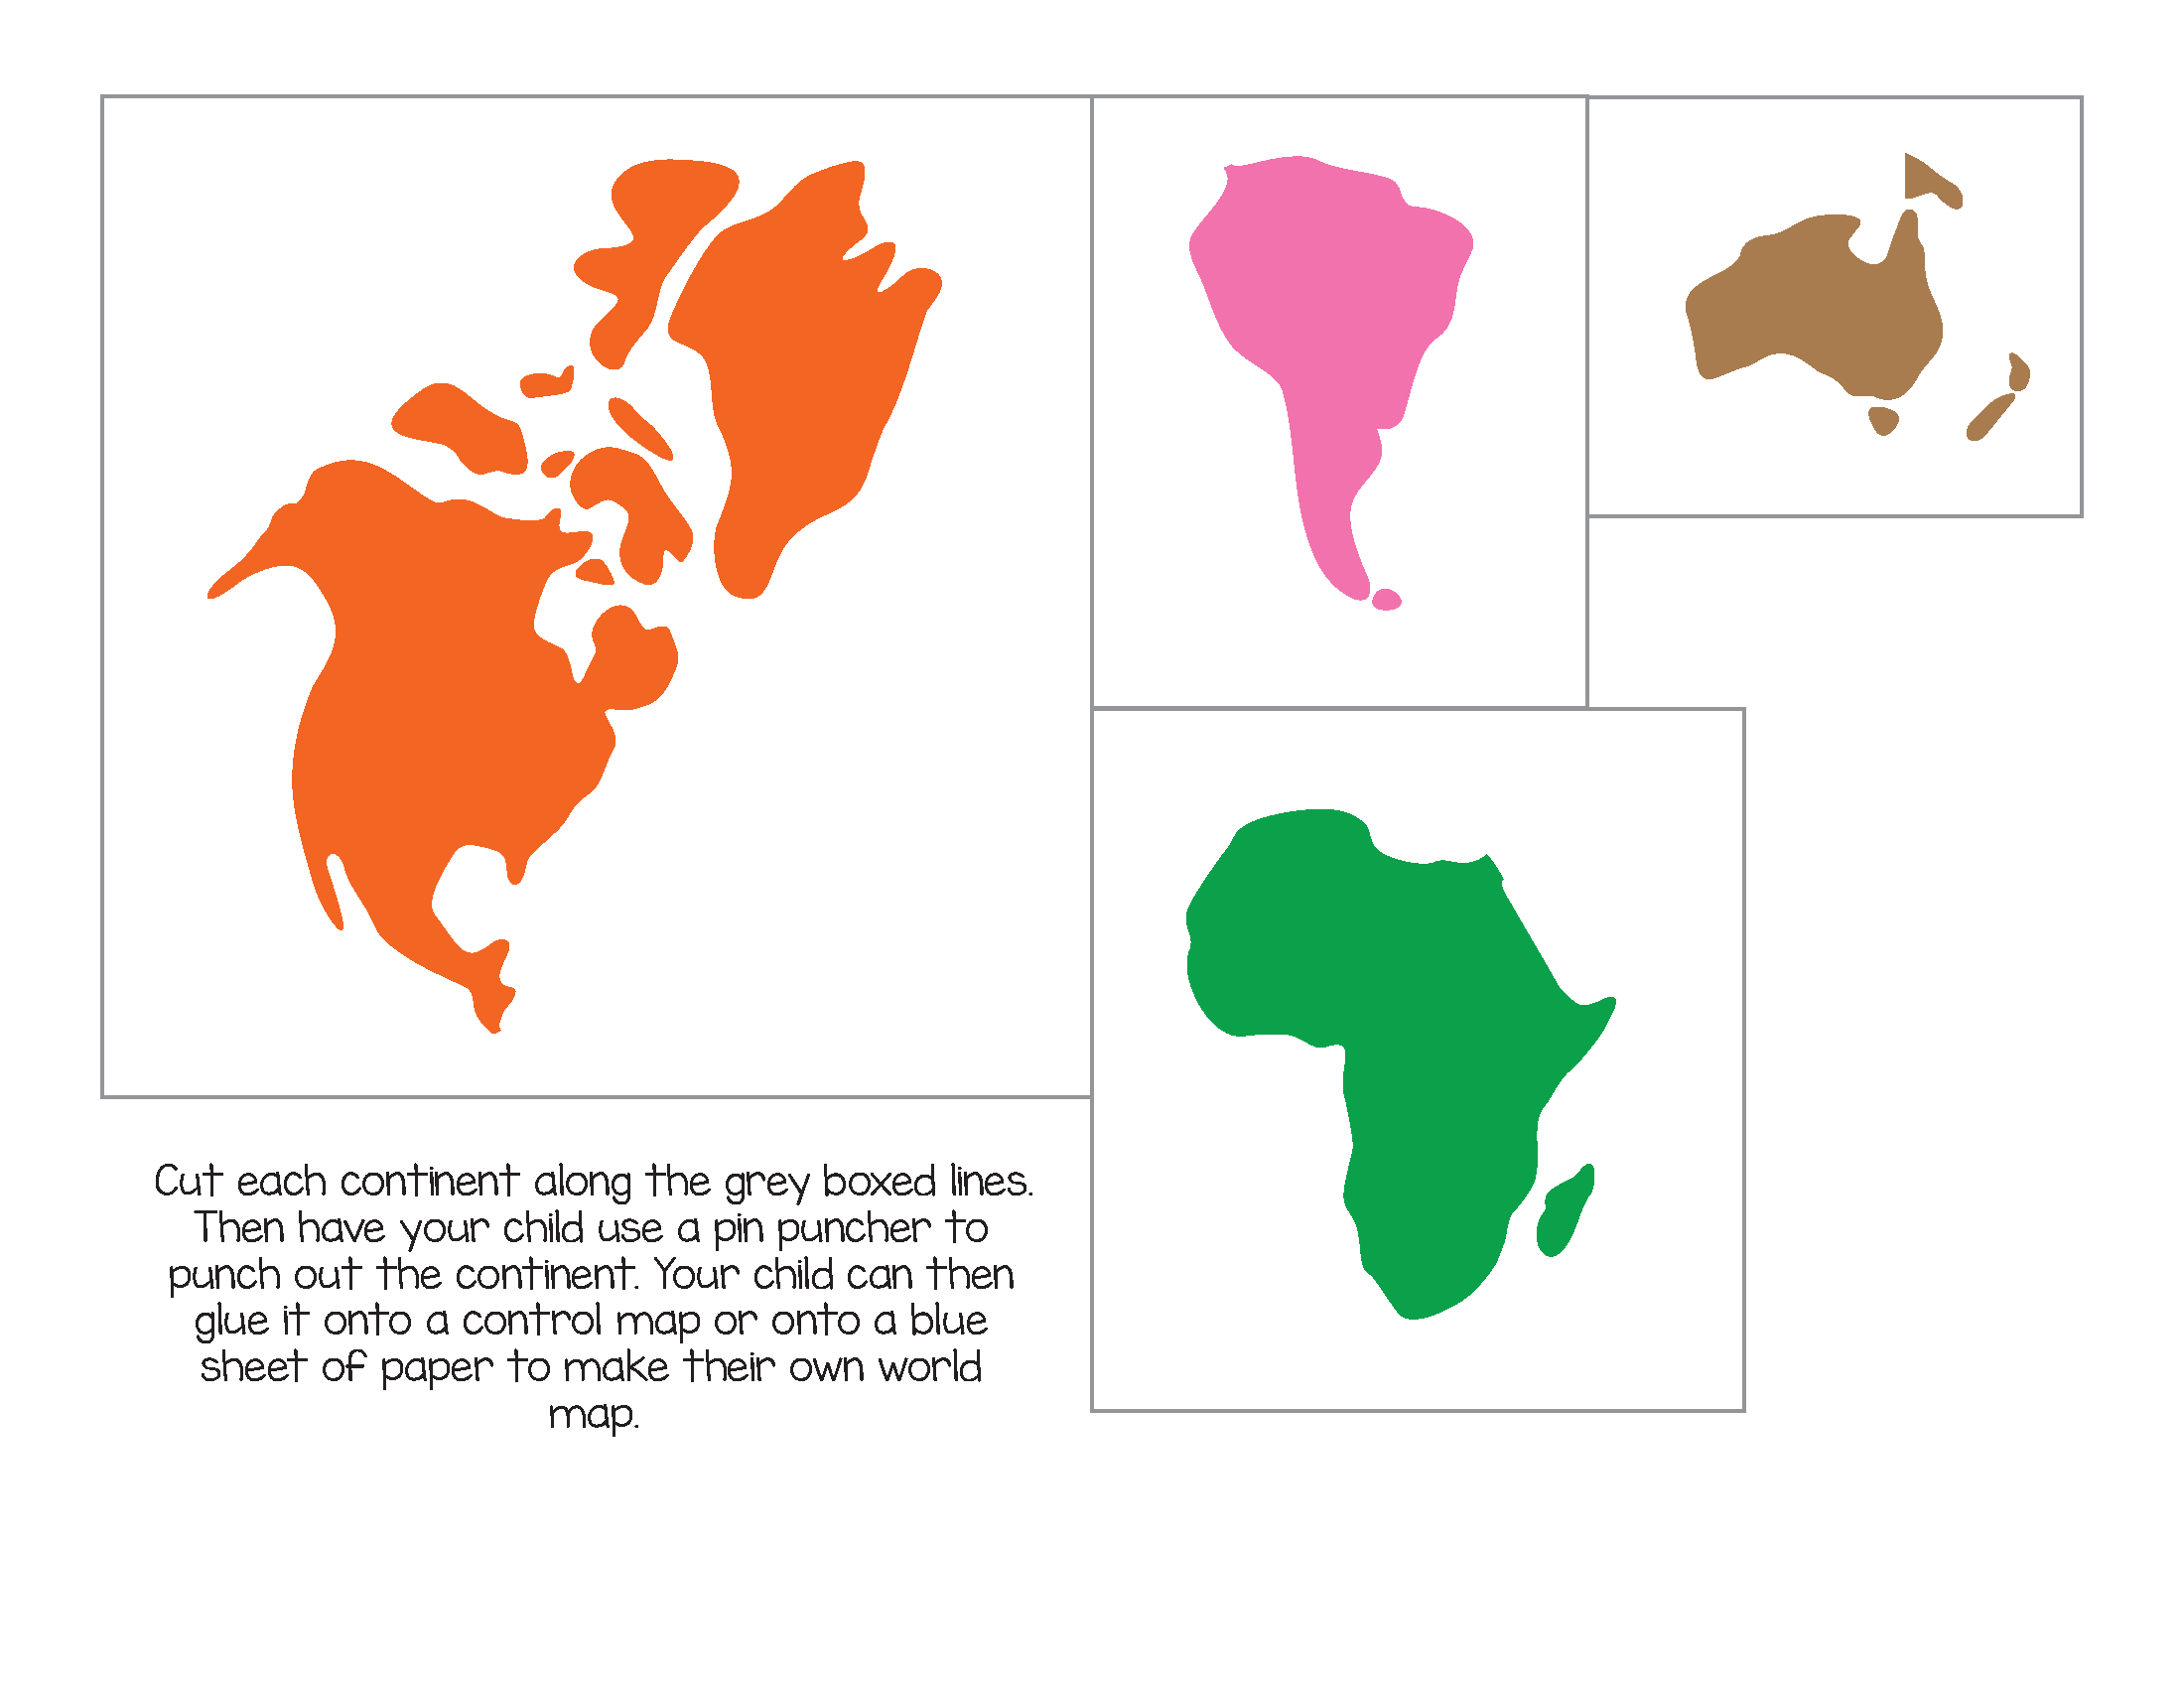 Montessori World Map And Continents - Gift Of Curiosity - Montessori World Map Free Printable